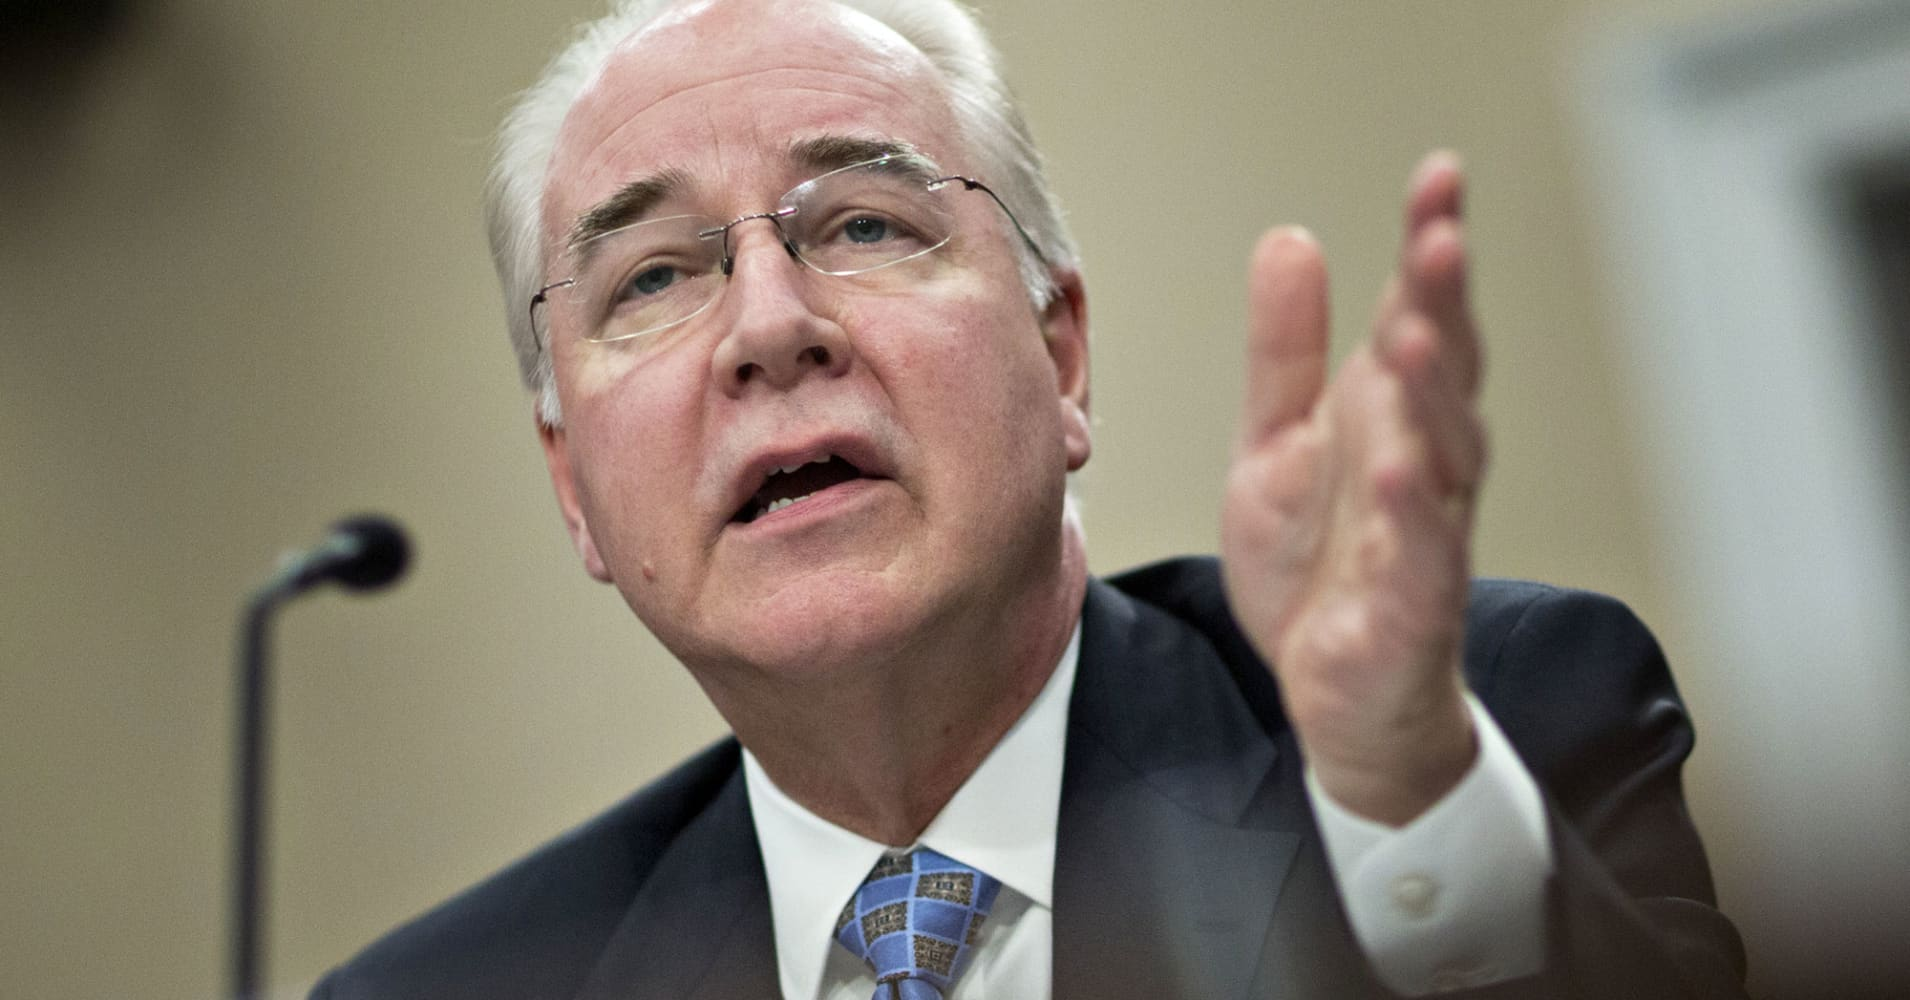 Health secretary pledges to uphold Obamacare, but promote it, not so much